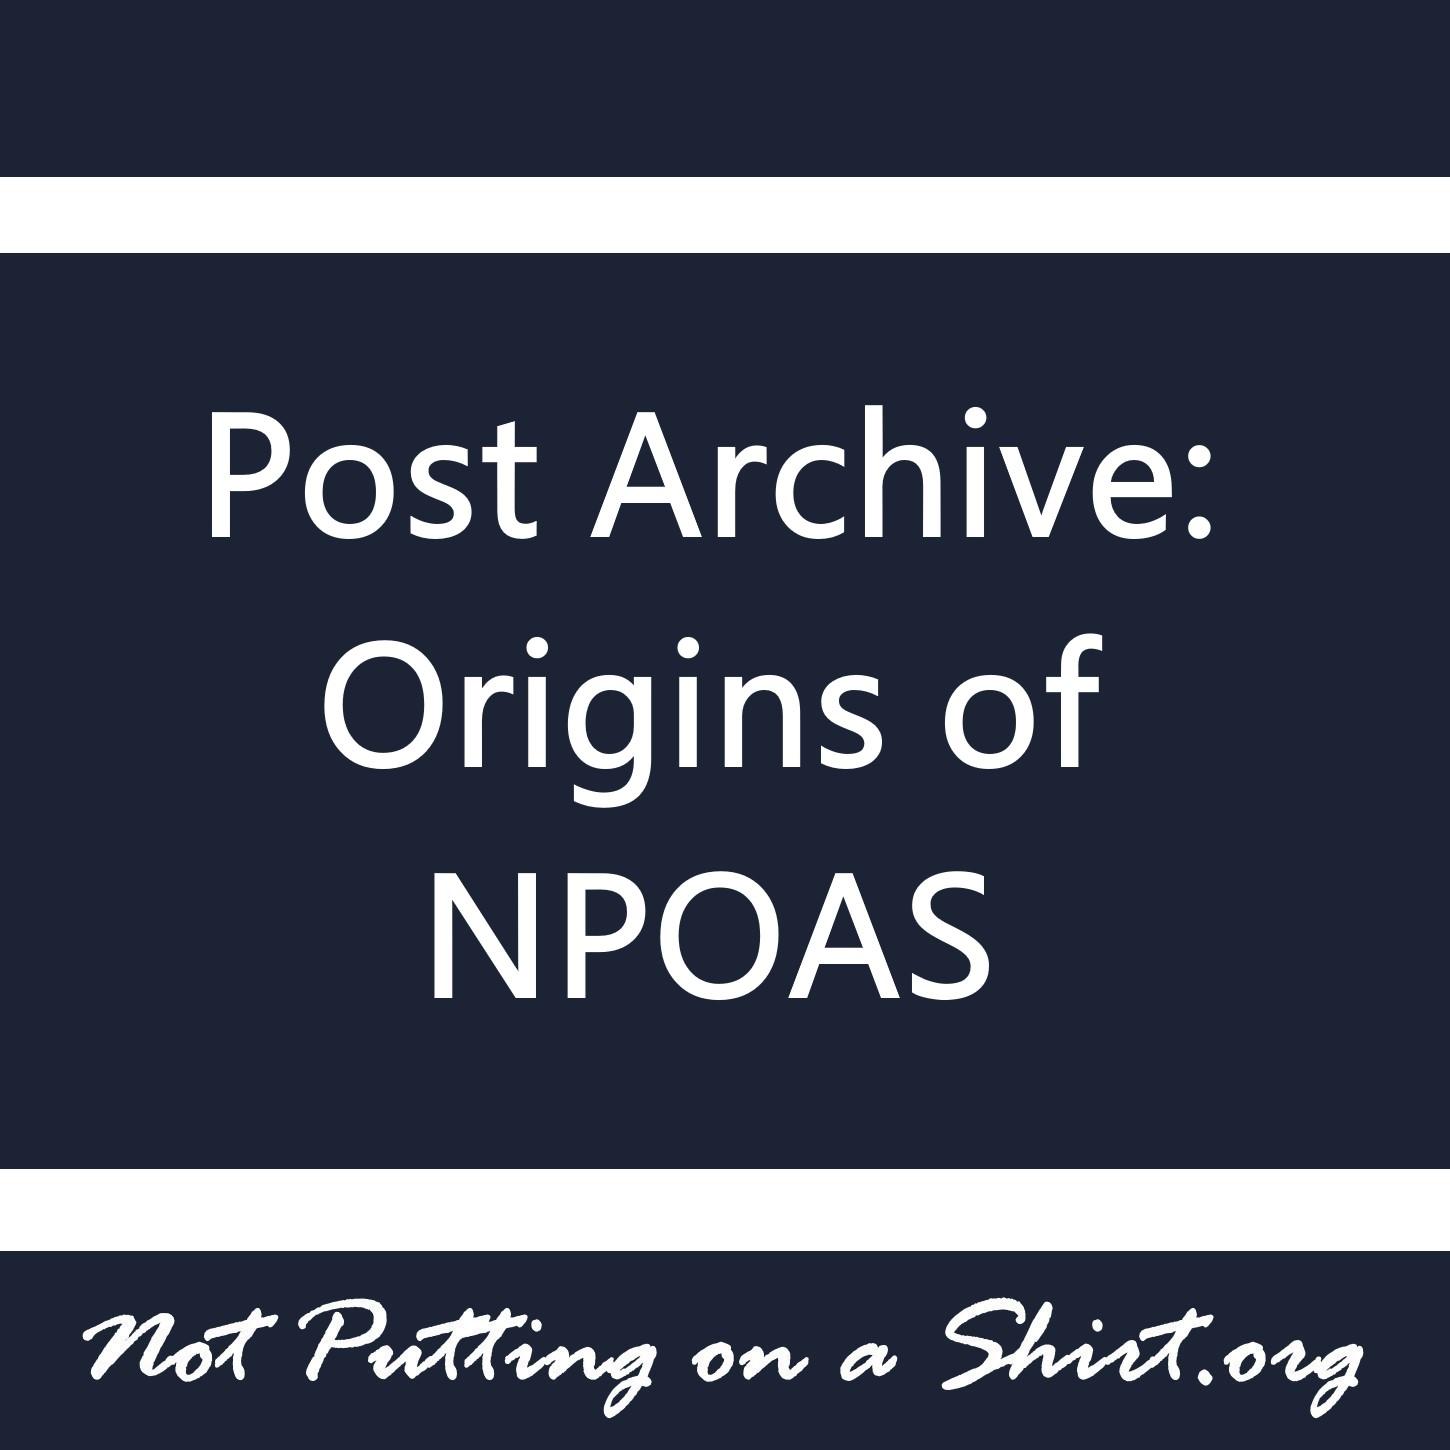 Post archives origins of NPOAS